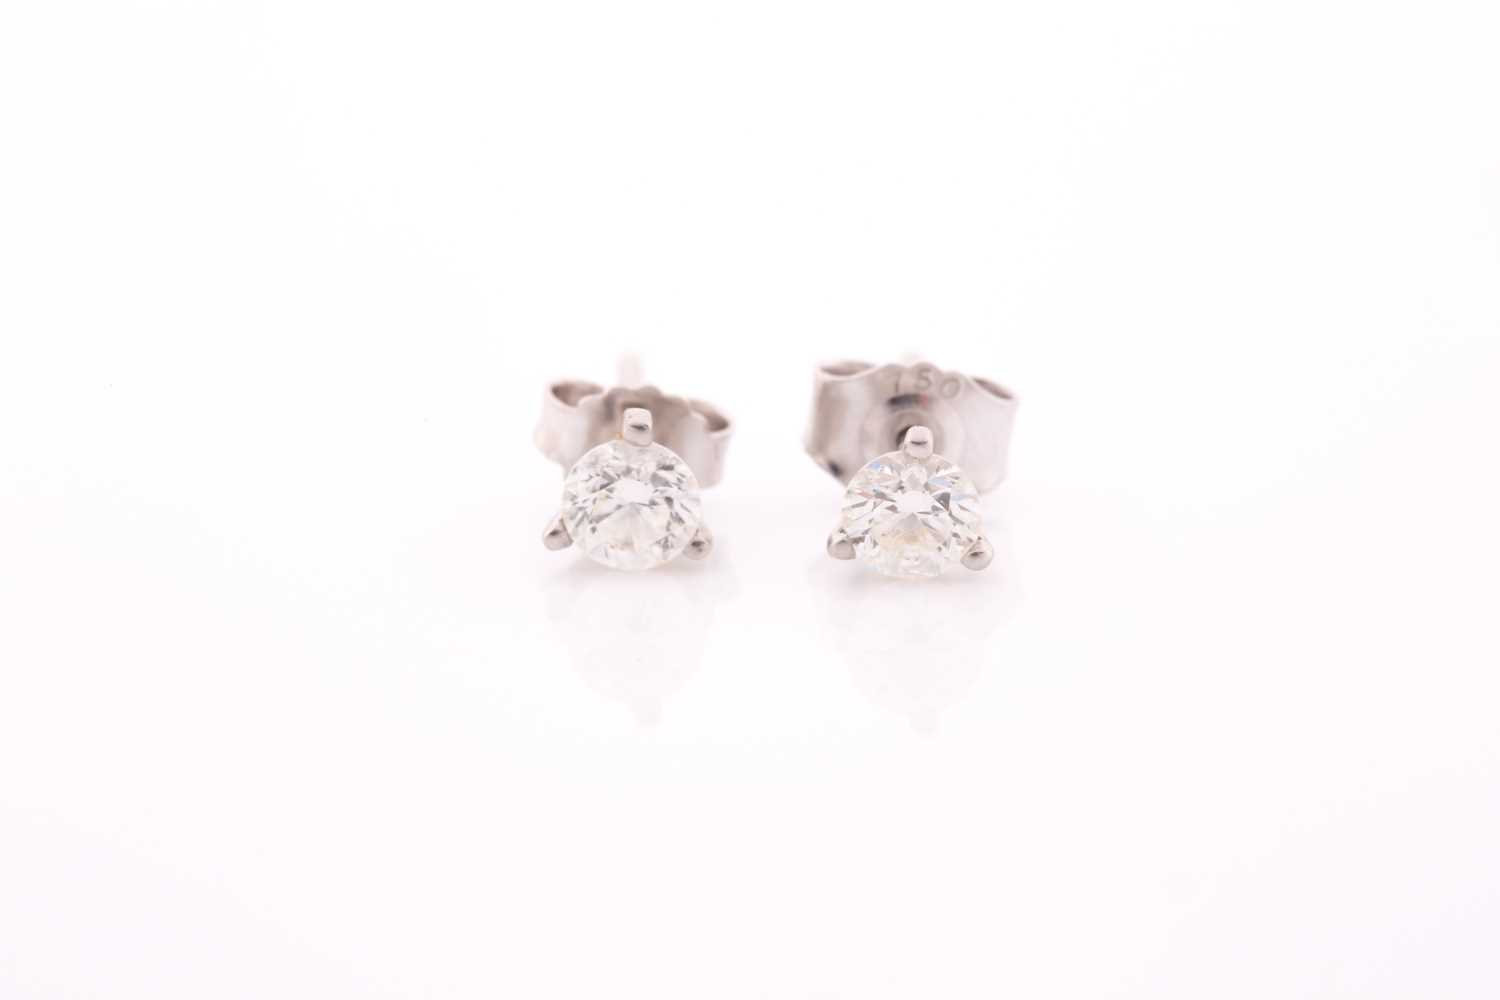 A pair of solitaire diamond stud earrings, set with round brilliant-cut diamonds of approximately